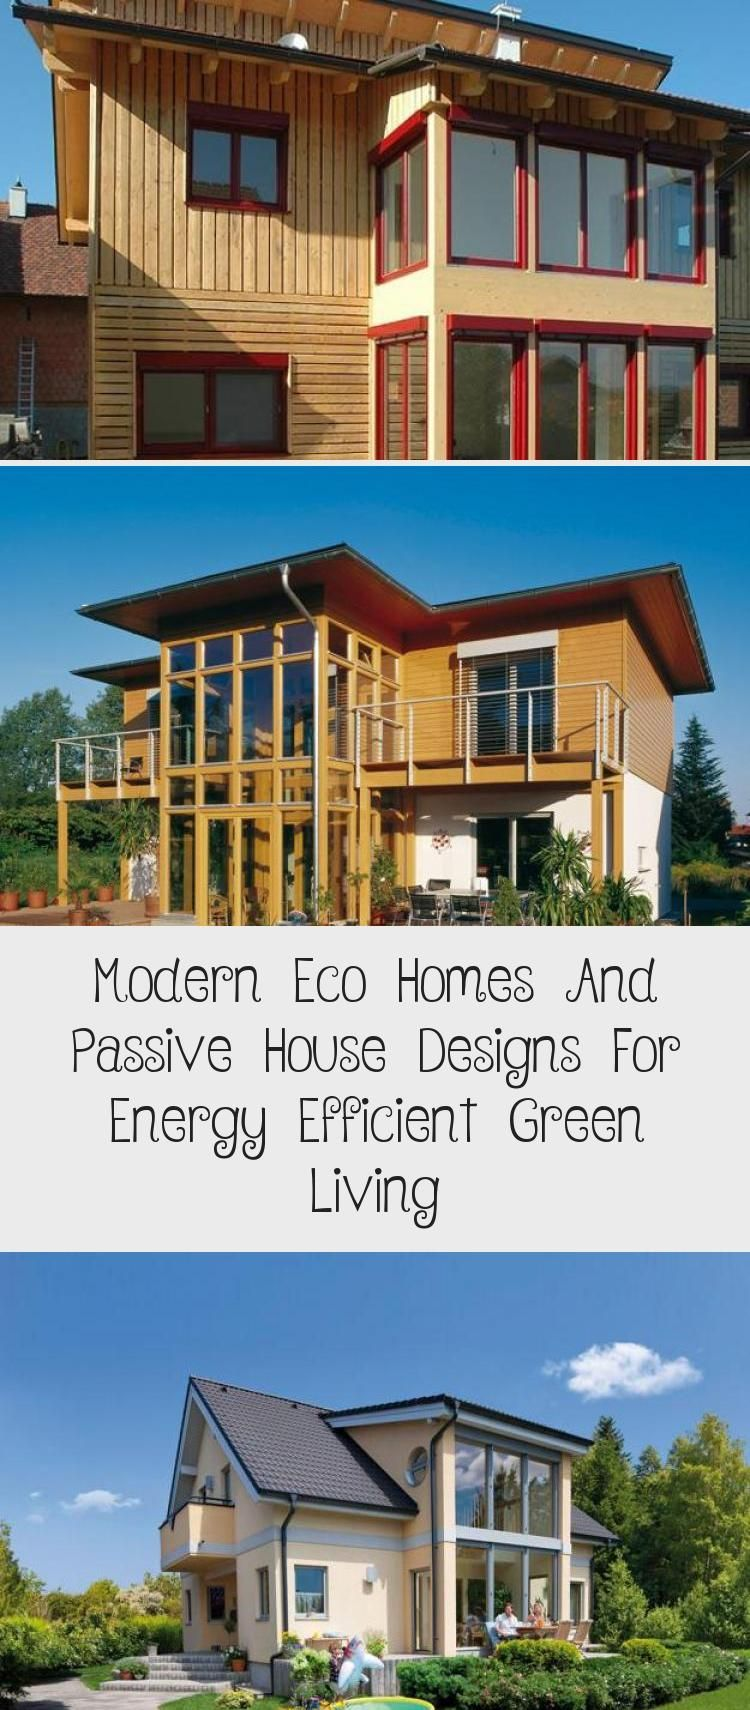 My Blog Passive House Design Simple House Exterior Design Town House Architecture